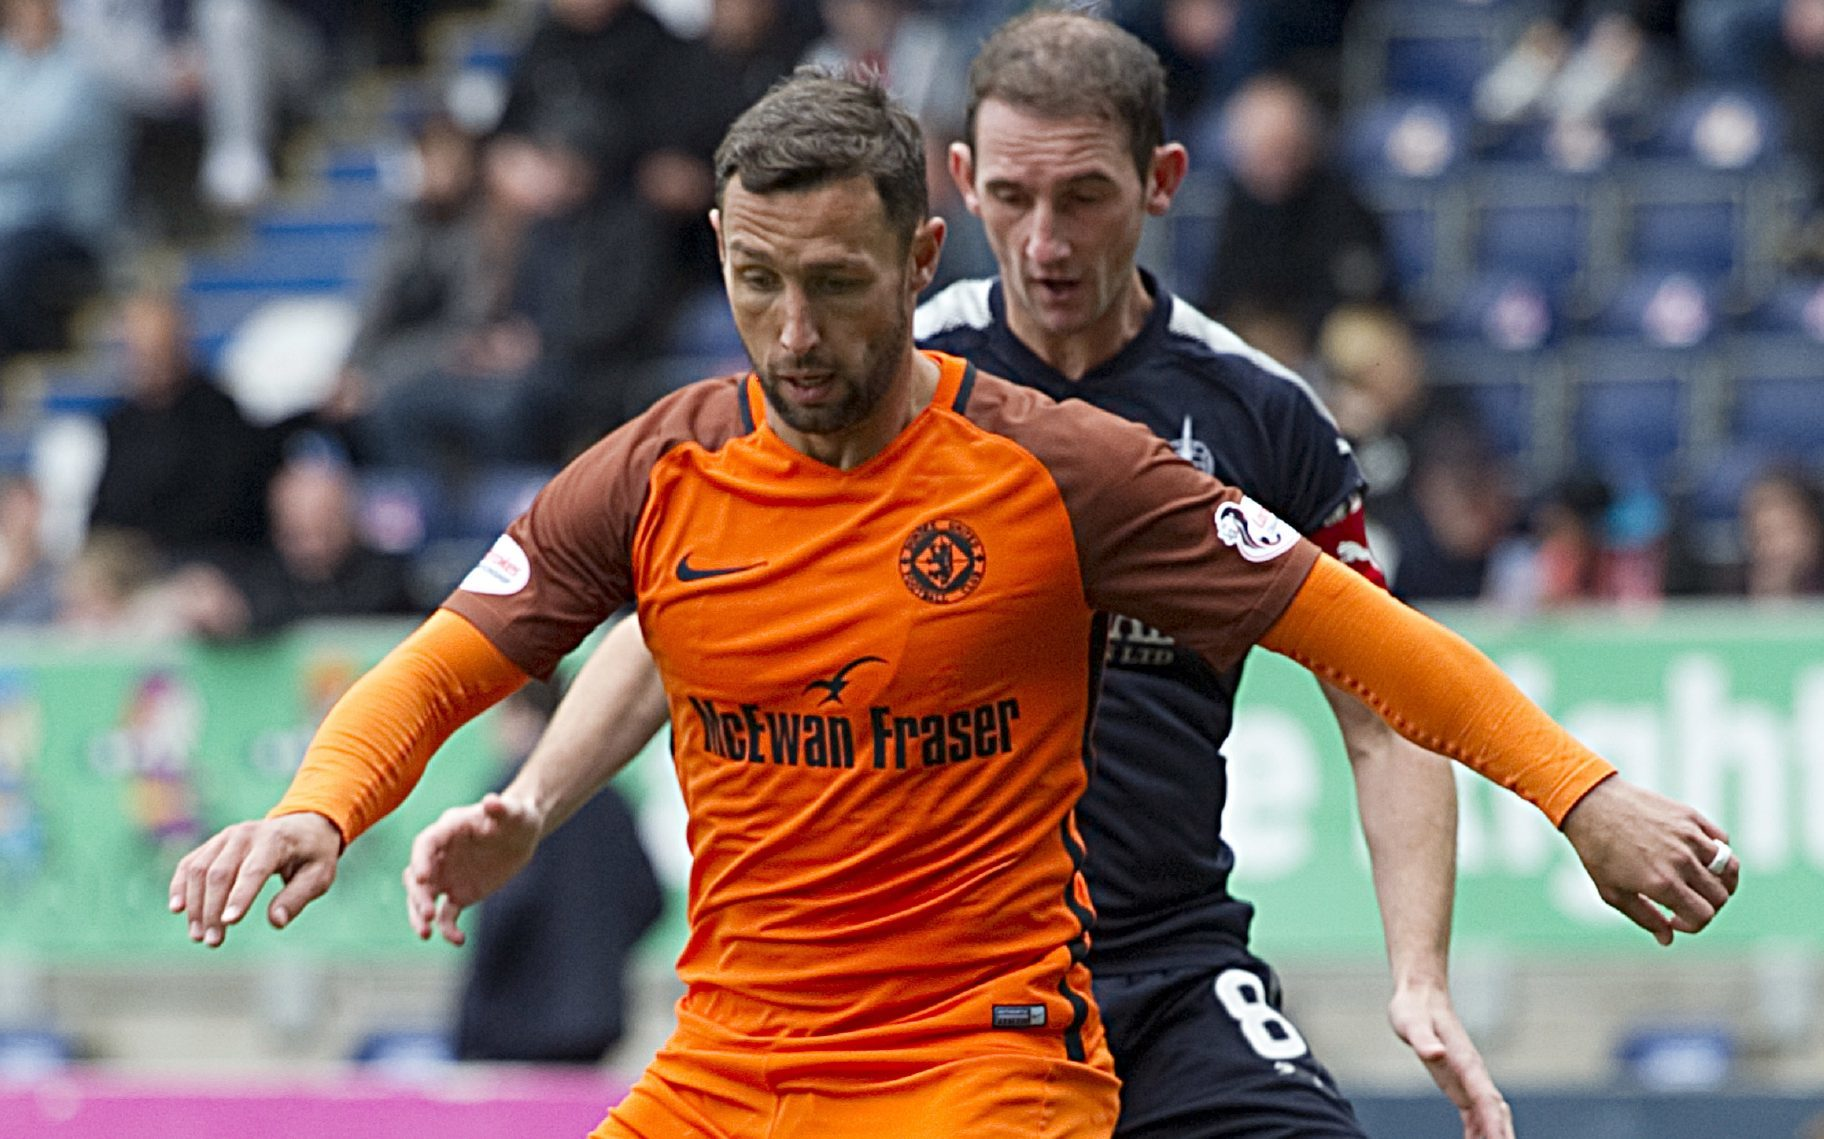 Scott McDonald of United holds off Falkirk player Mark Kerr.